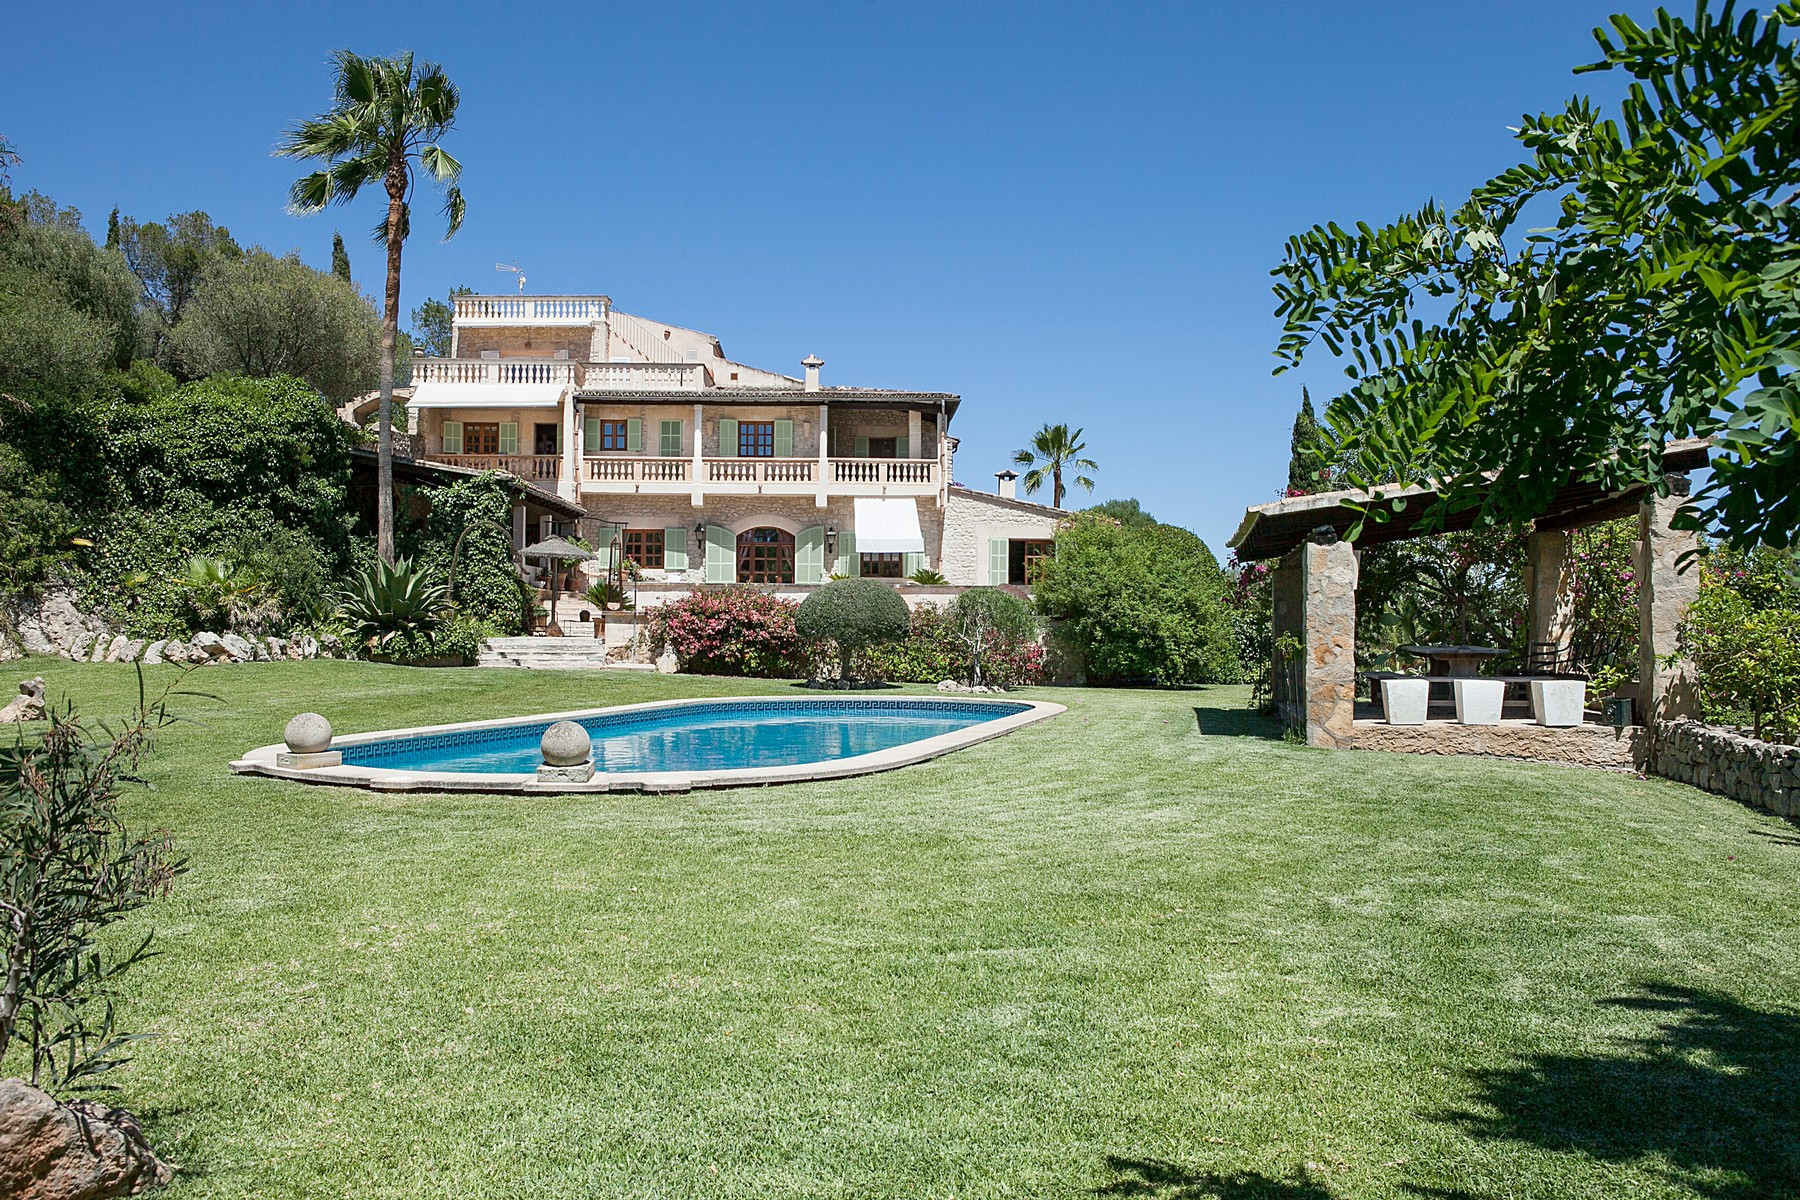 Single Family Home for Sale at Exlusive Country Estate in Montuiri Montuiri, Mallorca, 07230 Spain